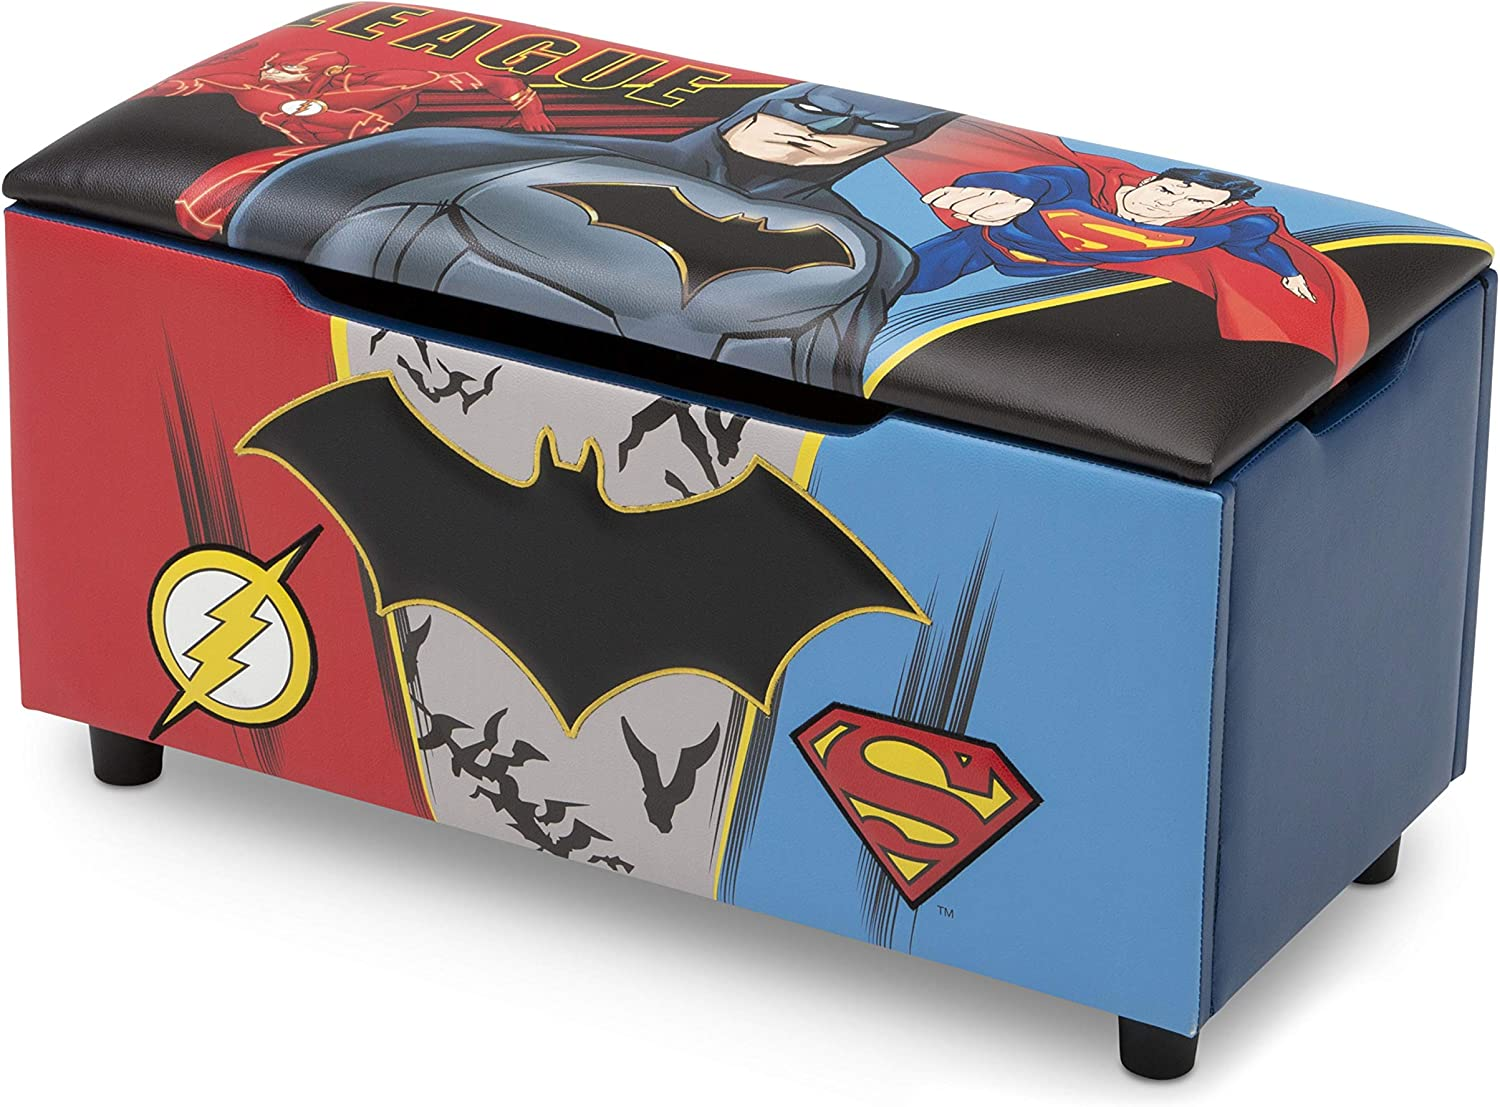 Thor Iron Man Captain America Perfect for Bedrooms//Playrooms//Living Rooms Features Fun Graphics of Hulk Marvel Avengers Upholstered Storage Bench for Kids